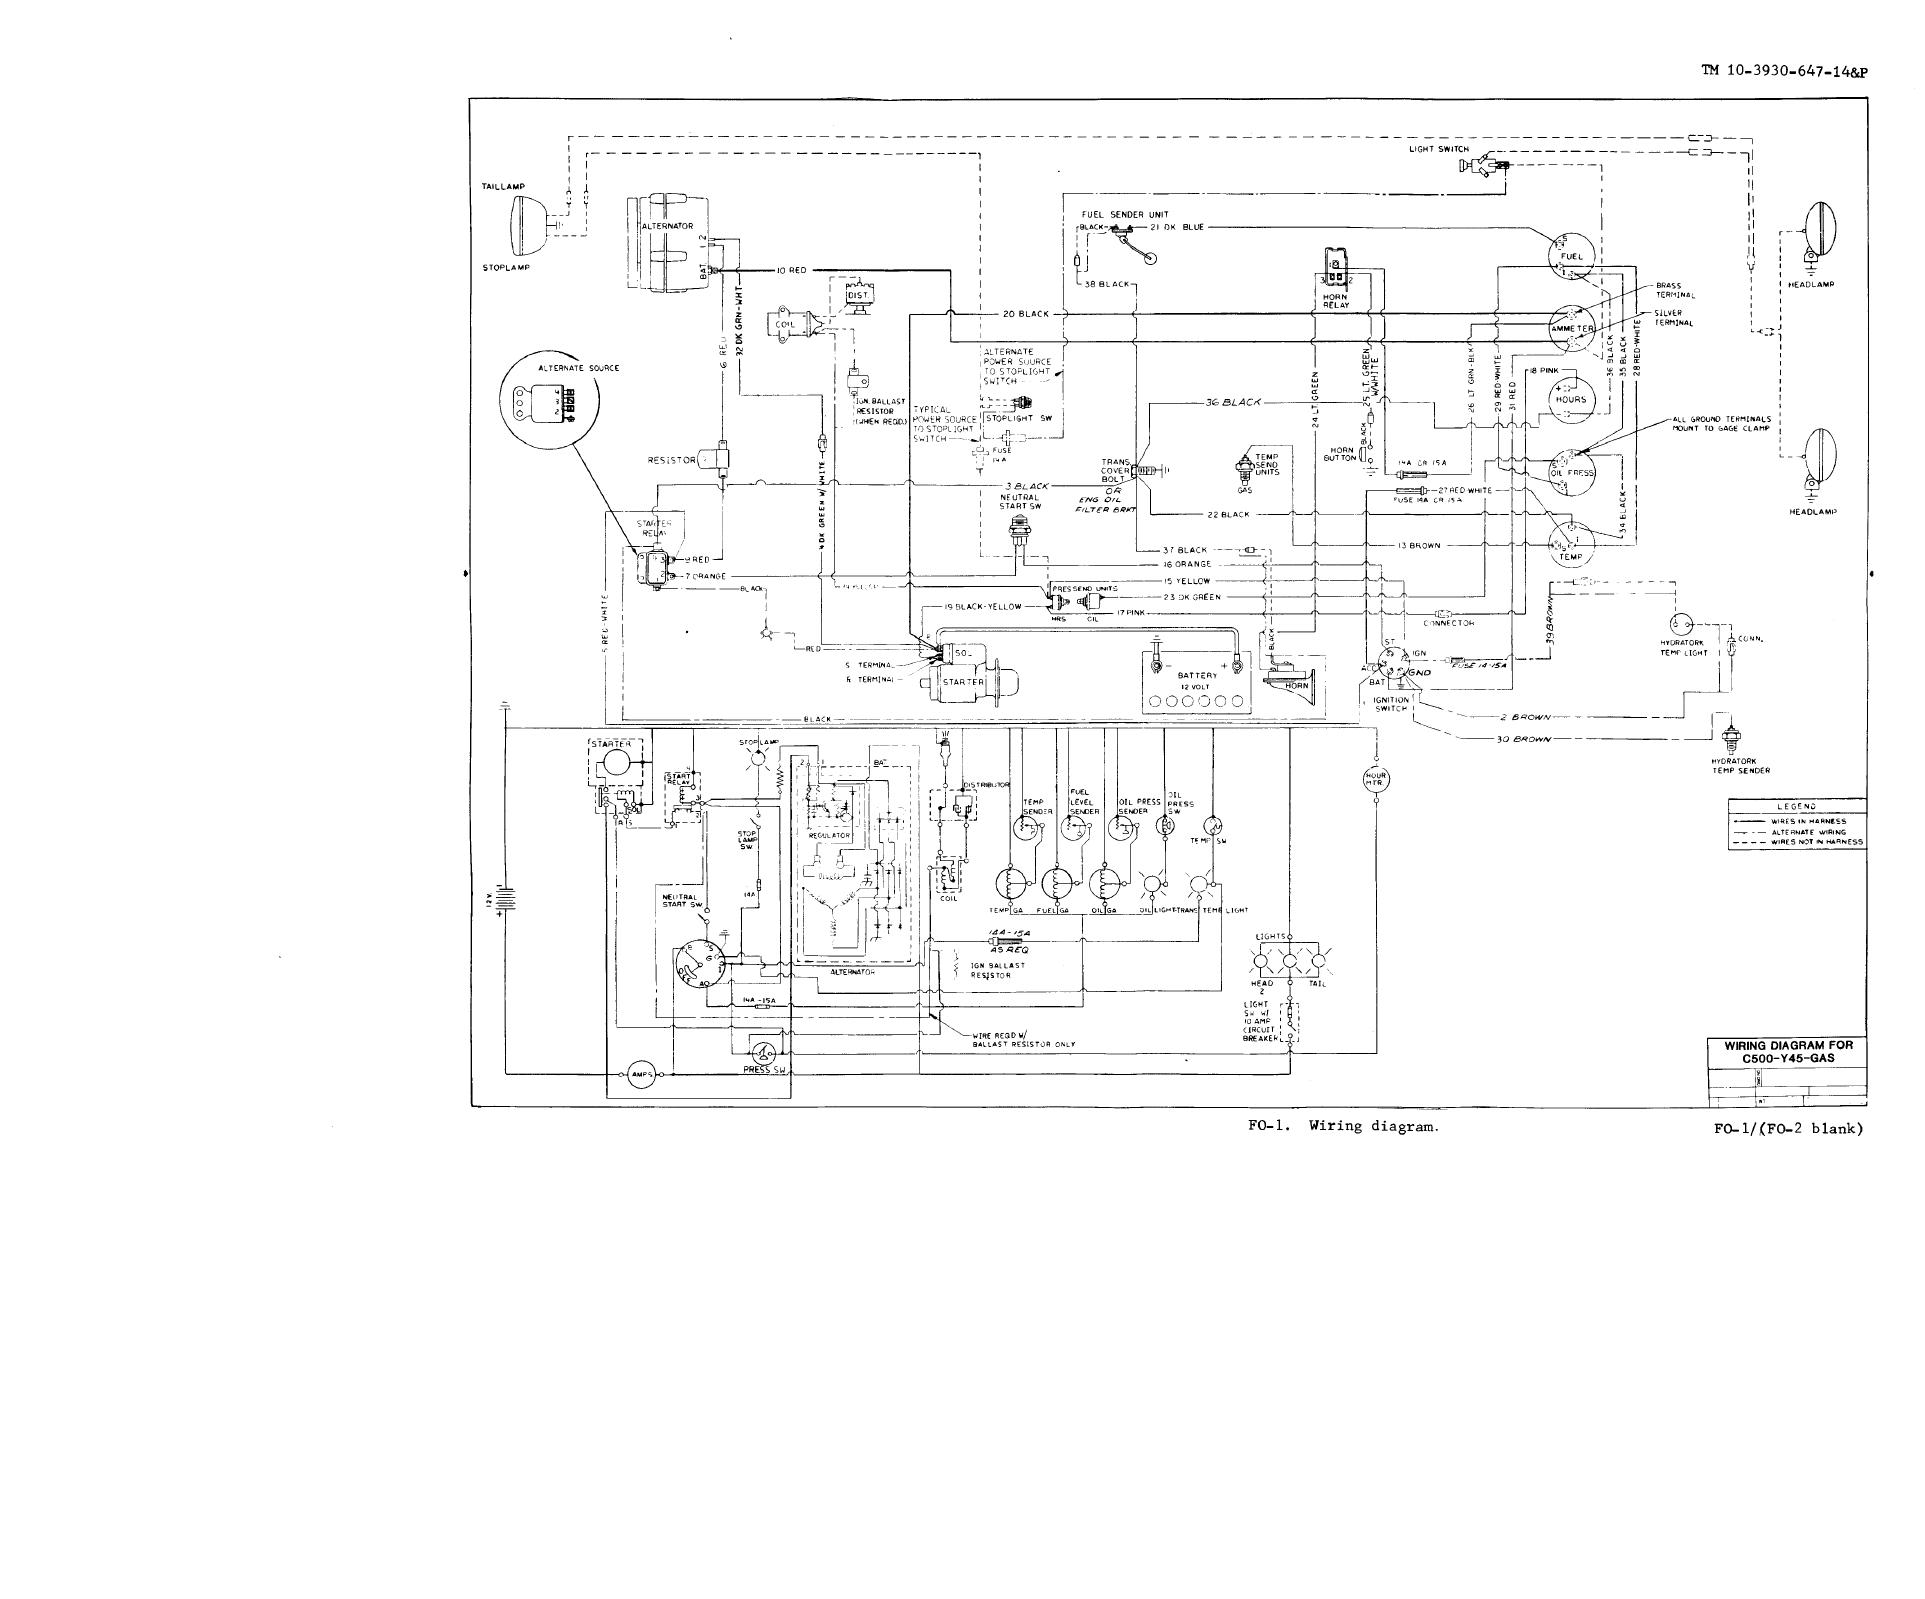 diagram] heli forklift wiring diagram full version hd linde forklift wiring diagram forklift wiring diagram #13